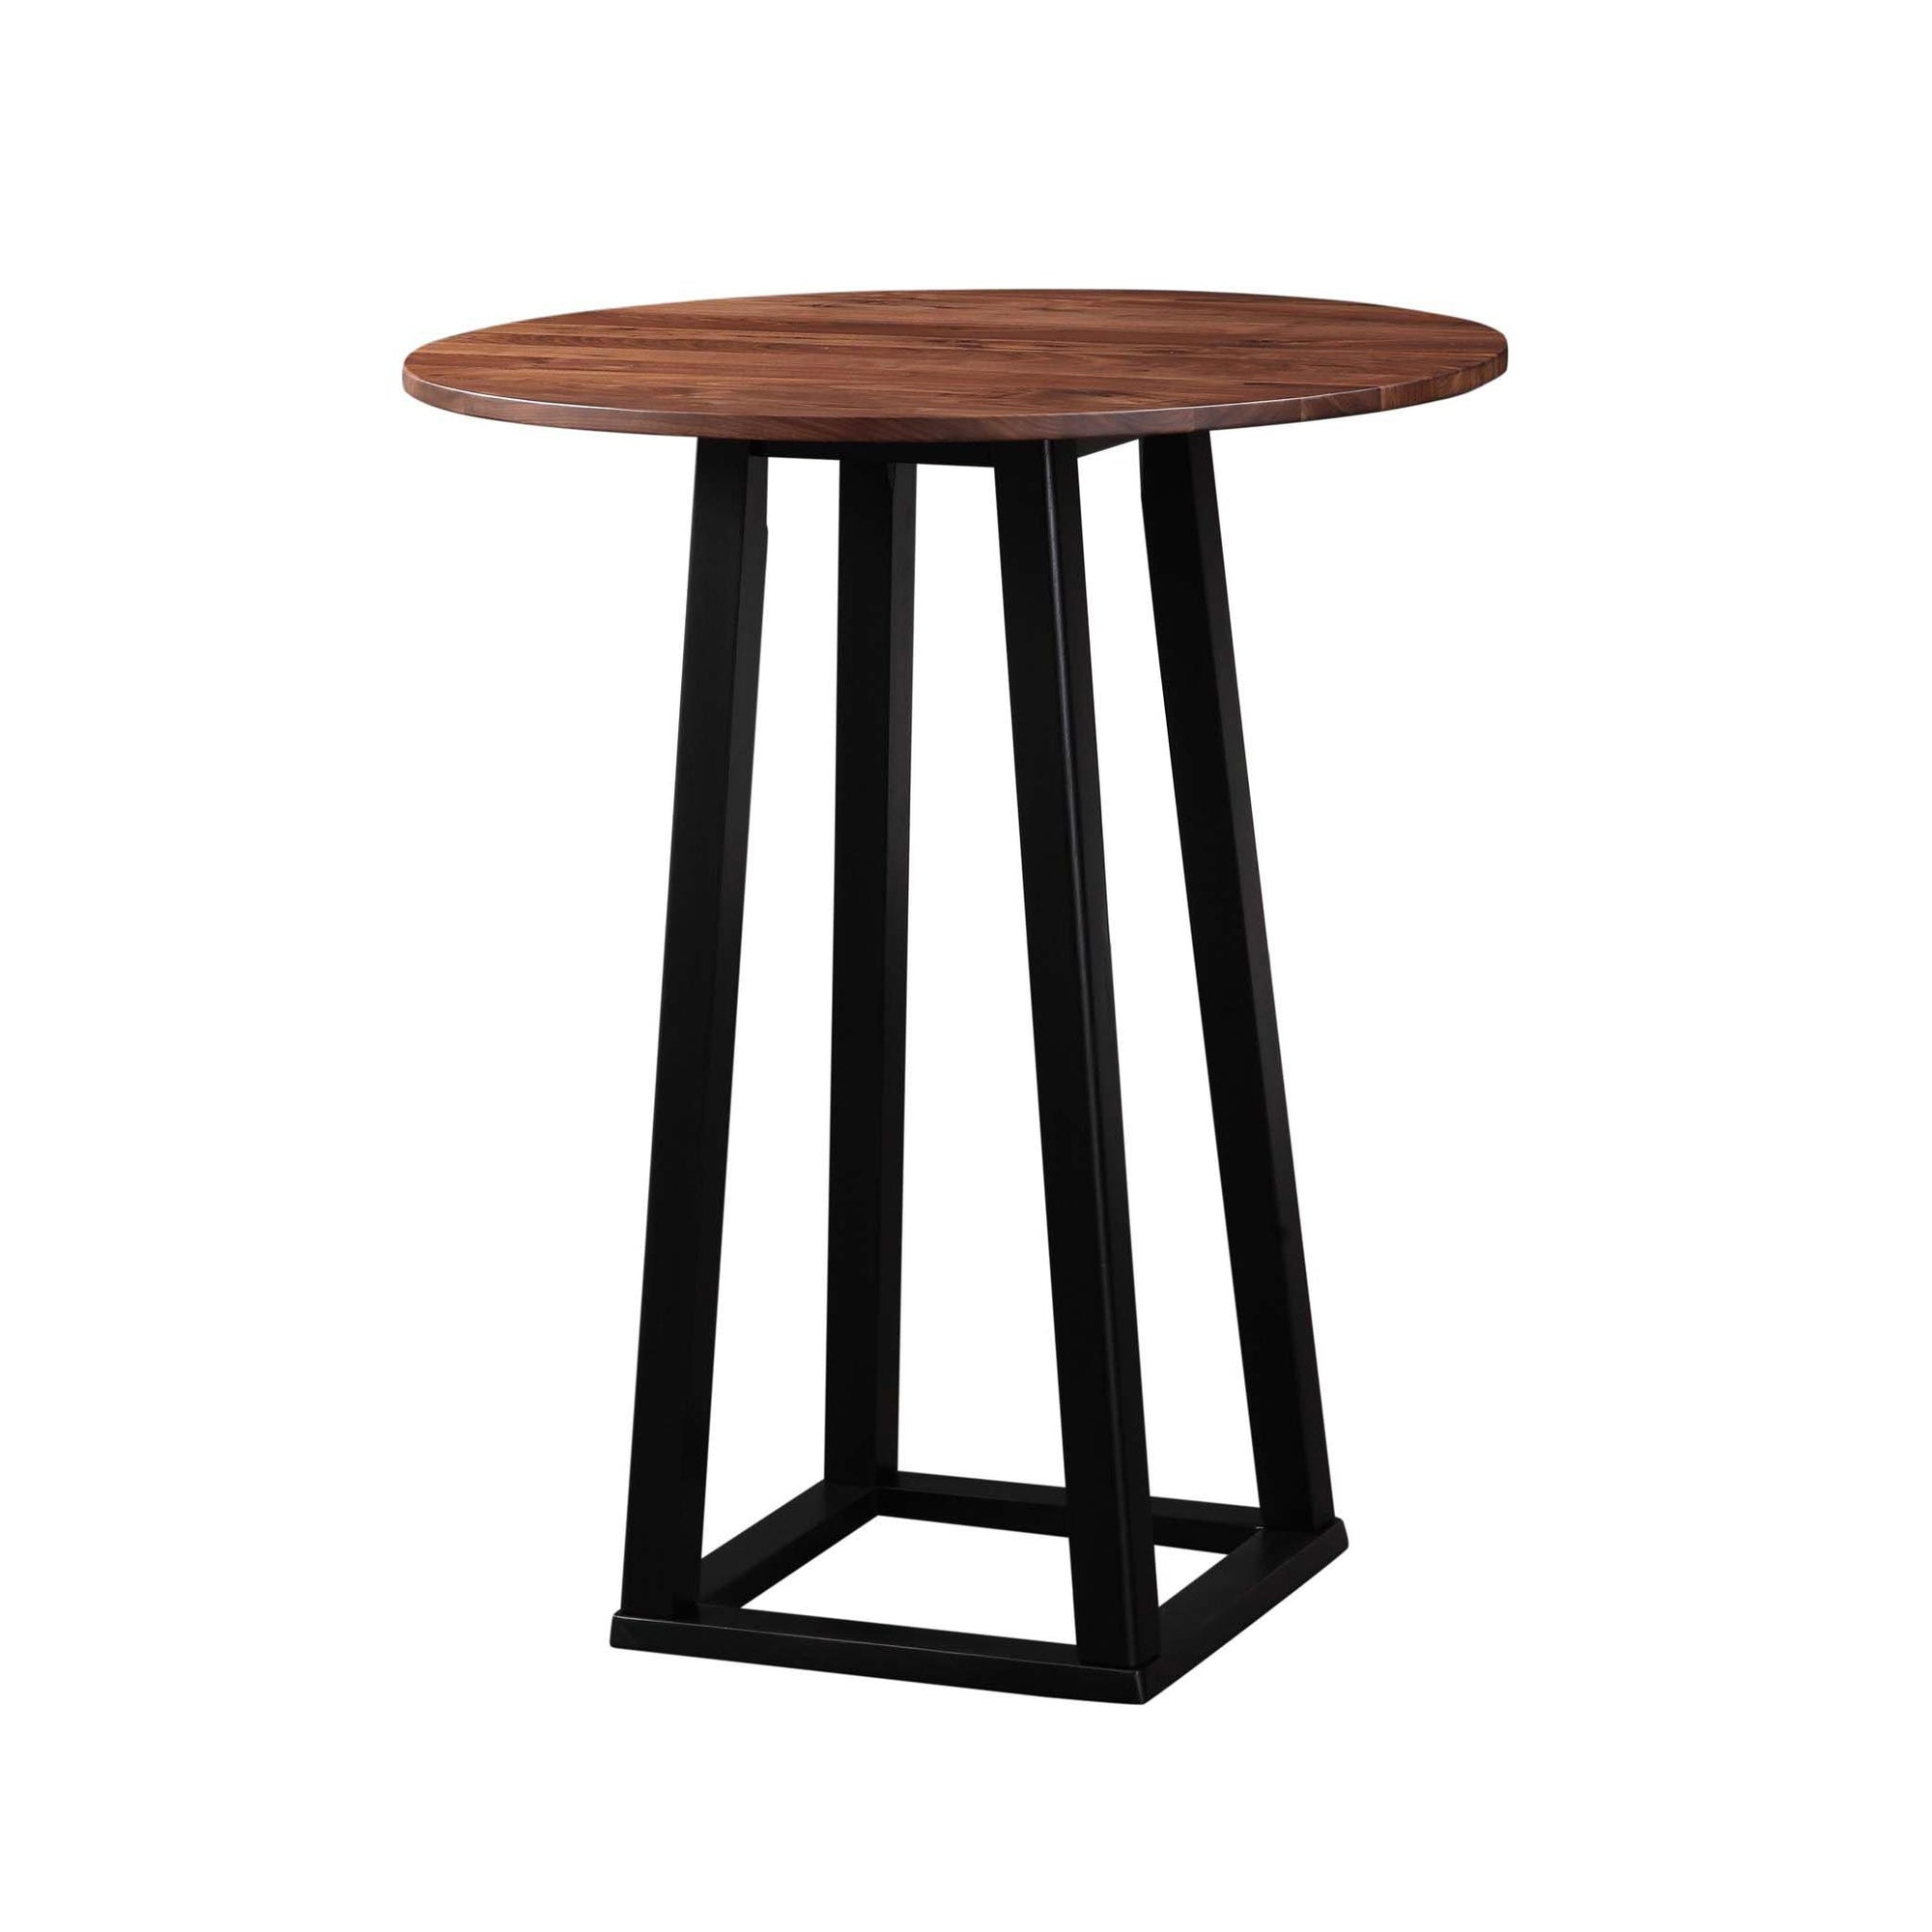 MOES-TRI-MESA BAR TABLE-Bar Tables-MODTEMPO